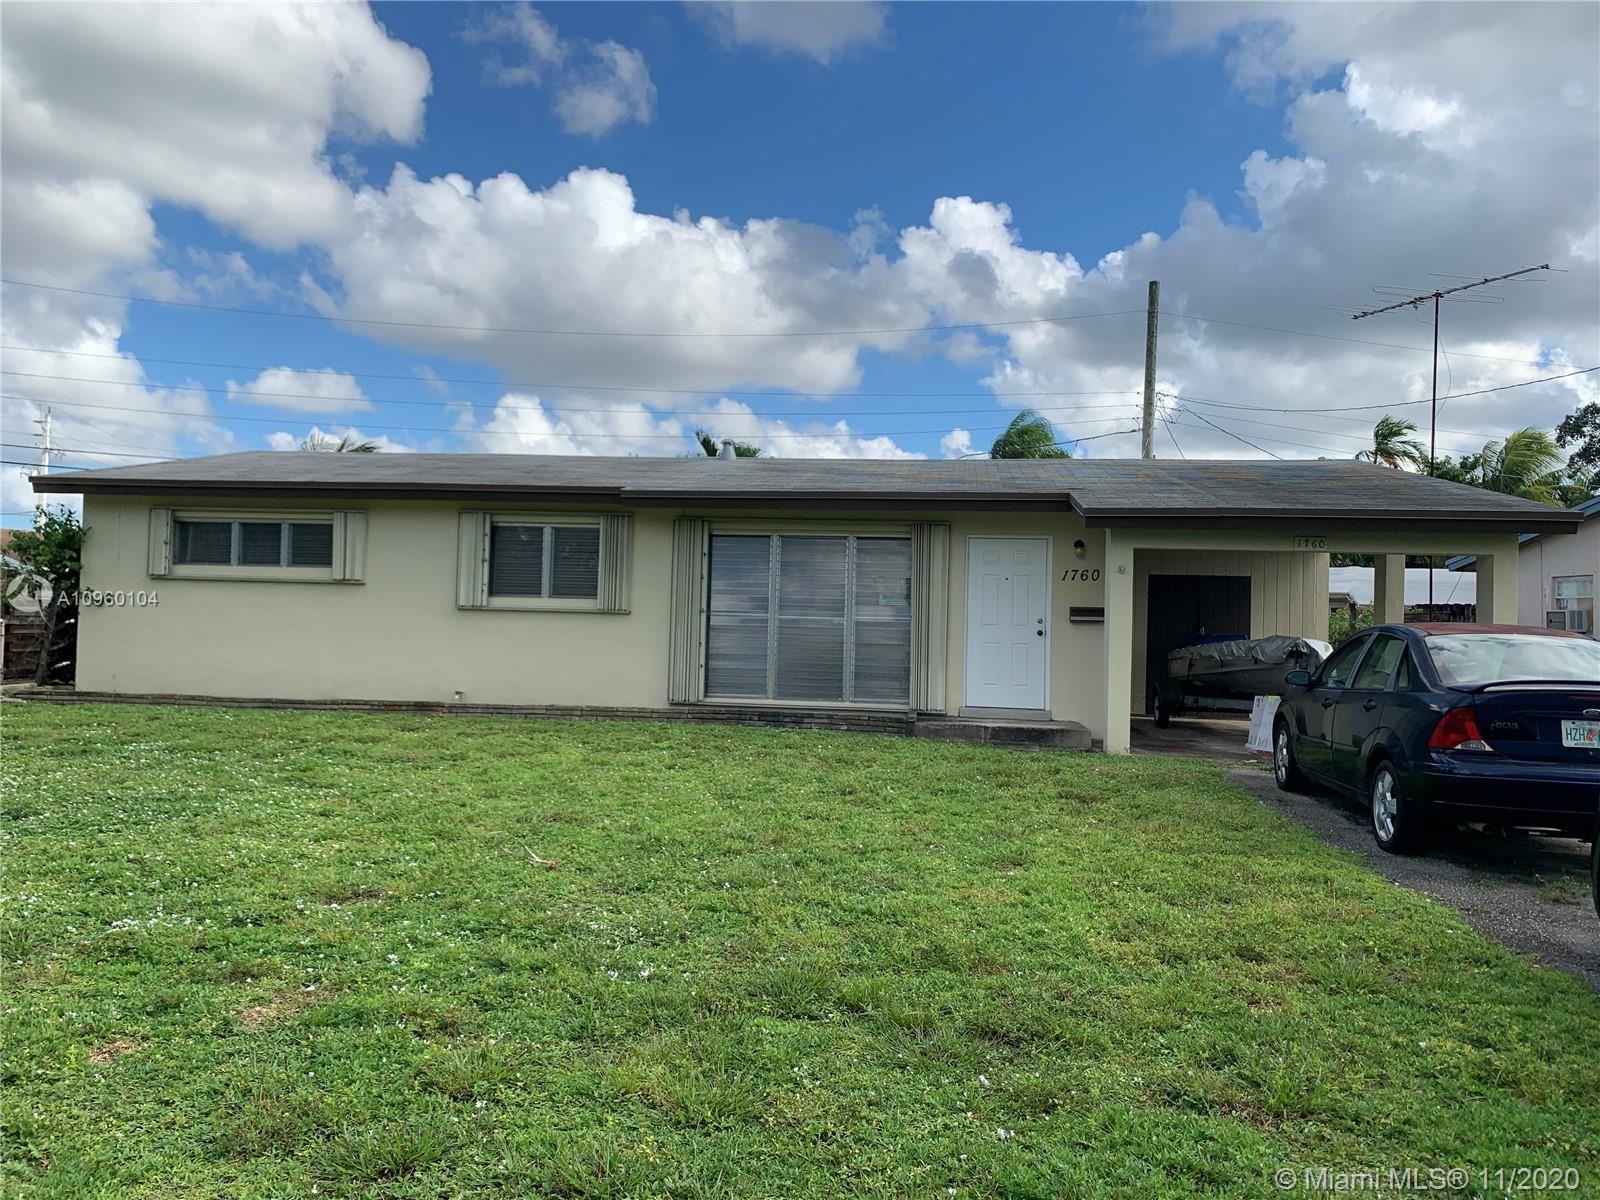 Great investment opportunity in a hot desirable area.  One story home, 3 bedrooms, 2 baths with easy